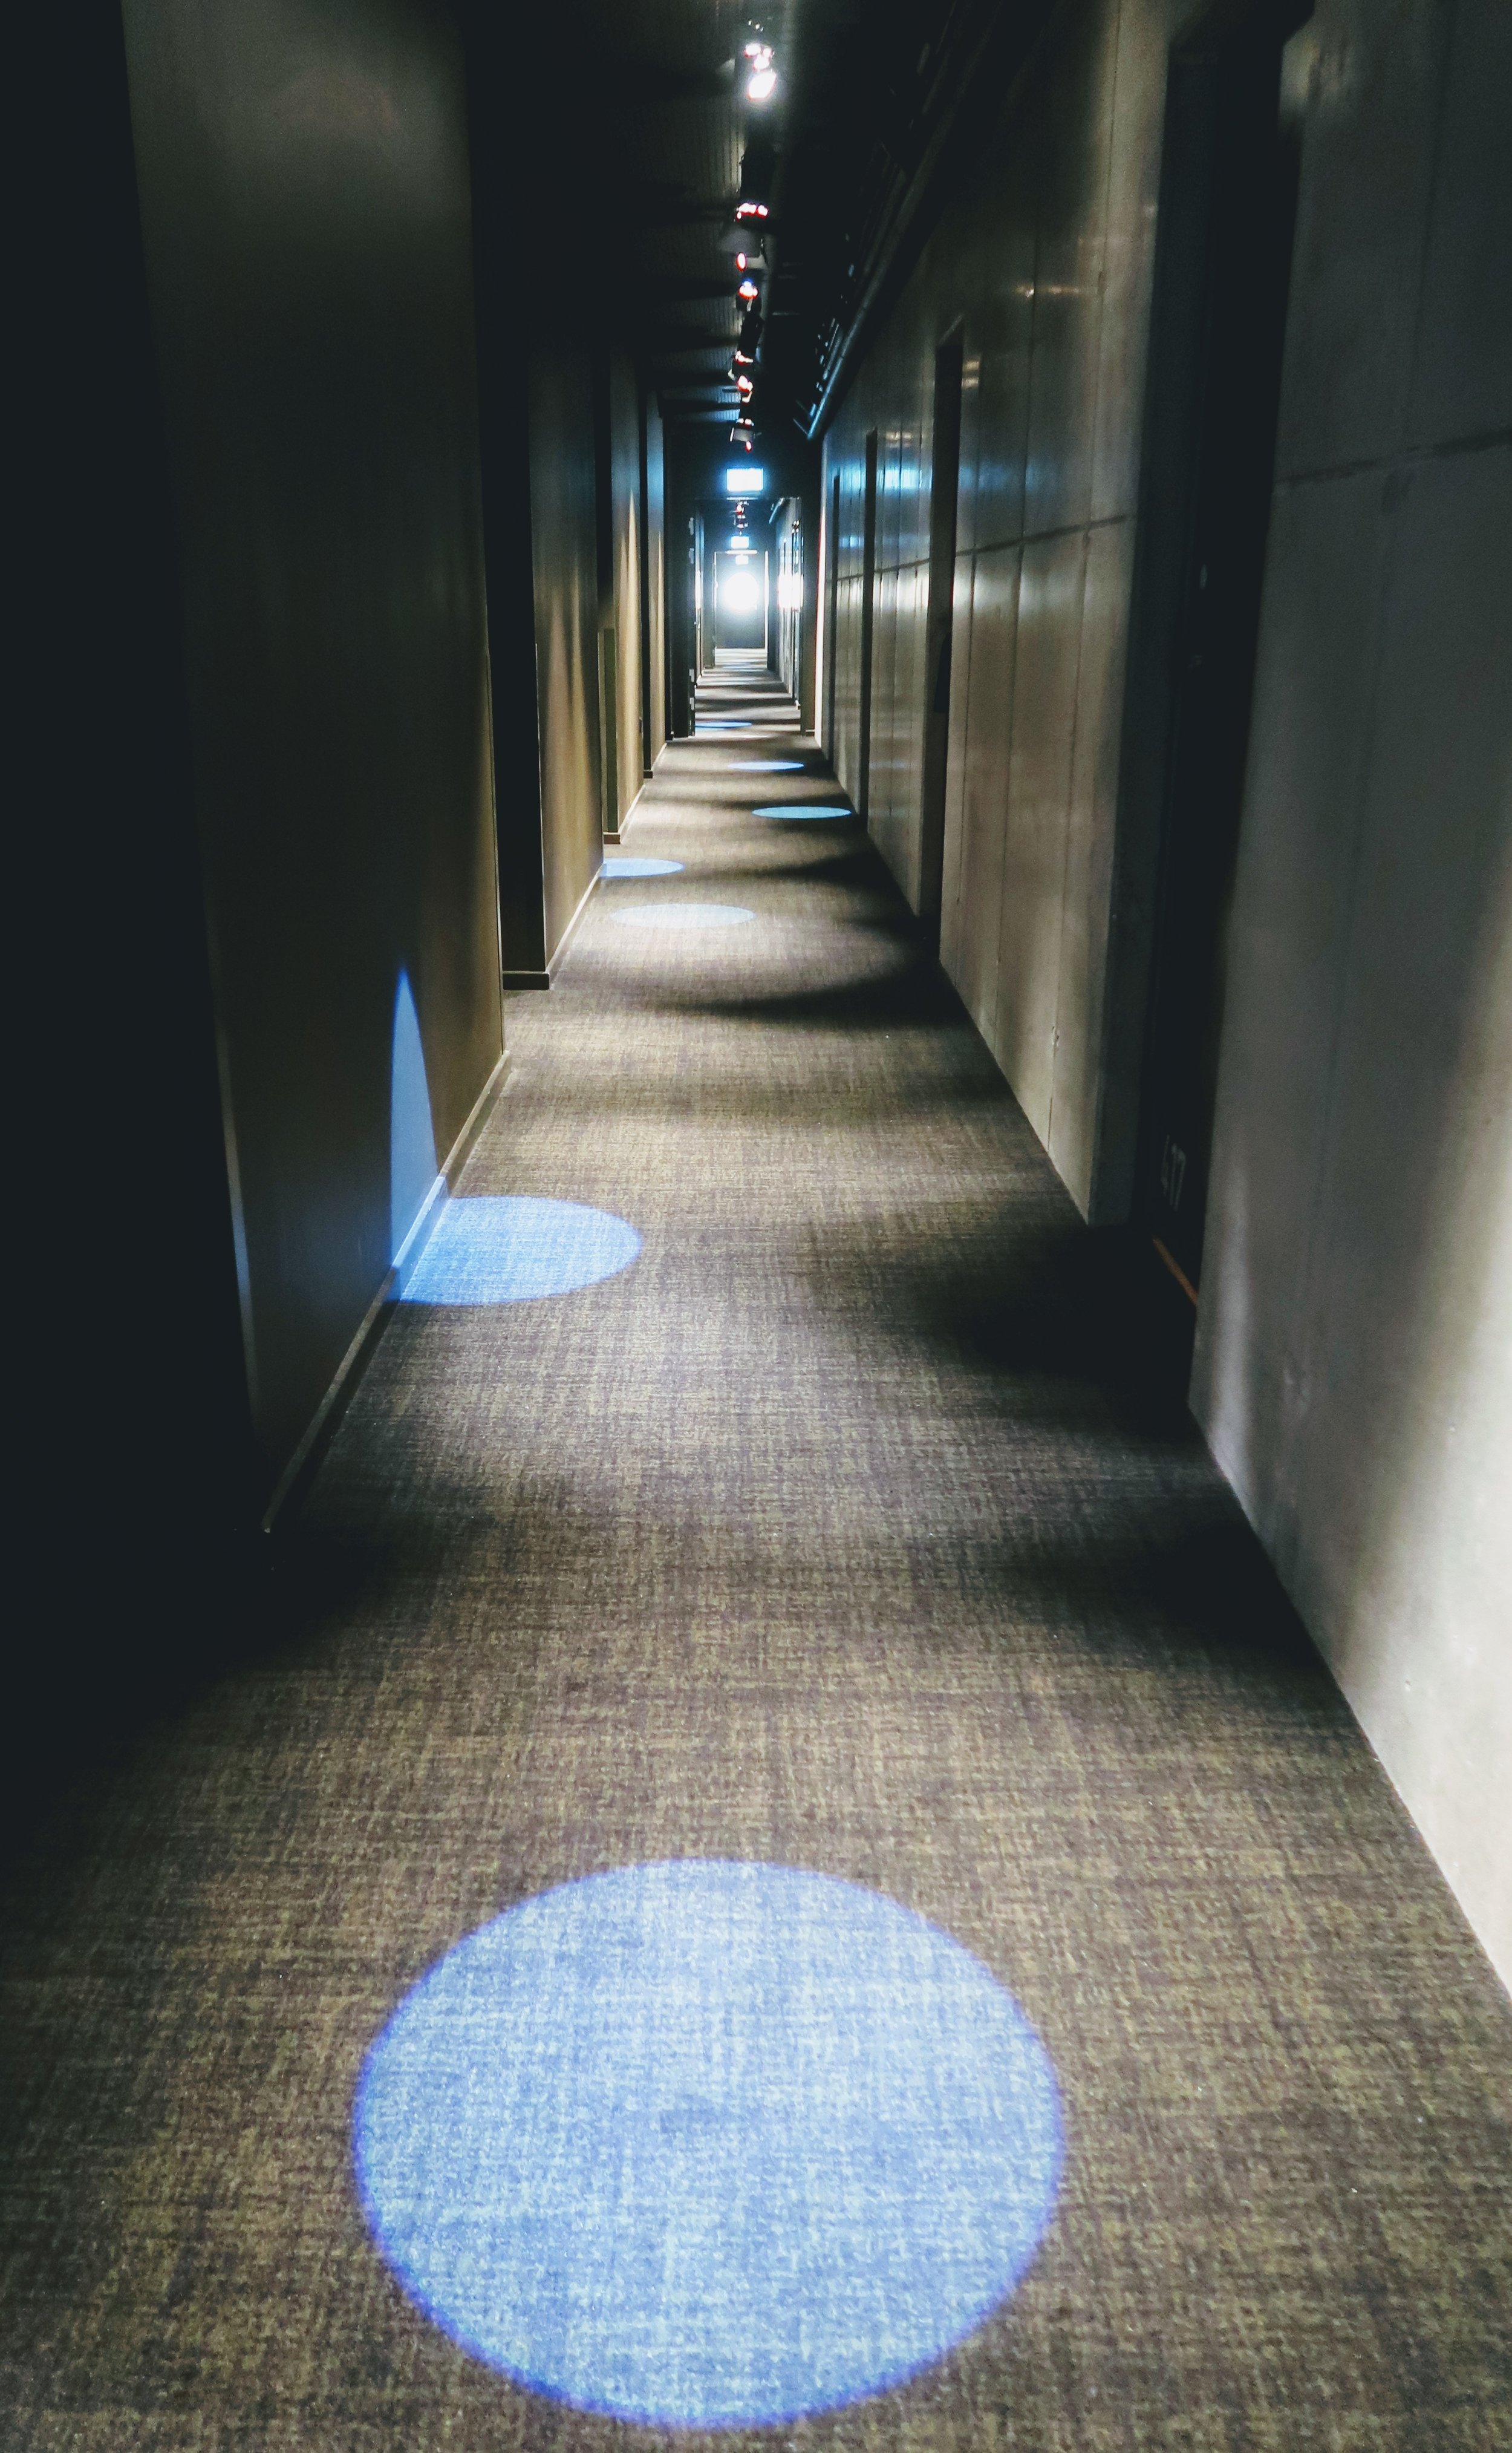 Love the funky lights set up for the guest room corridors.